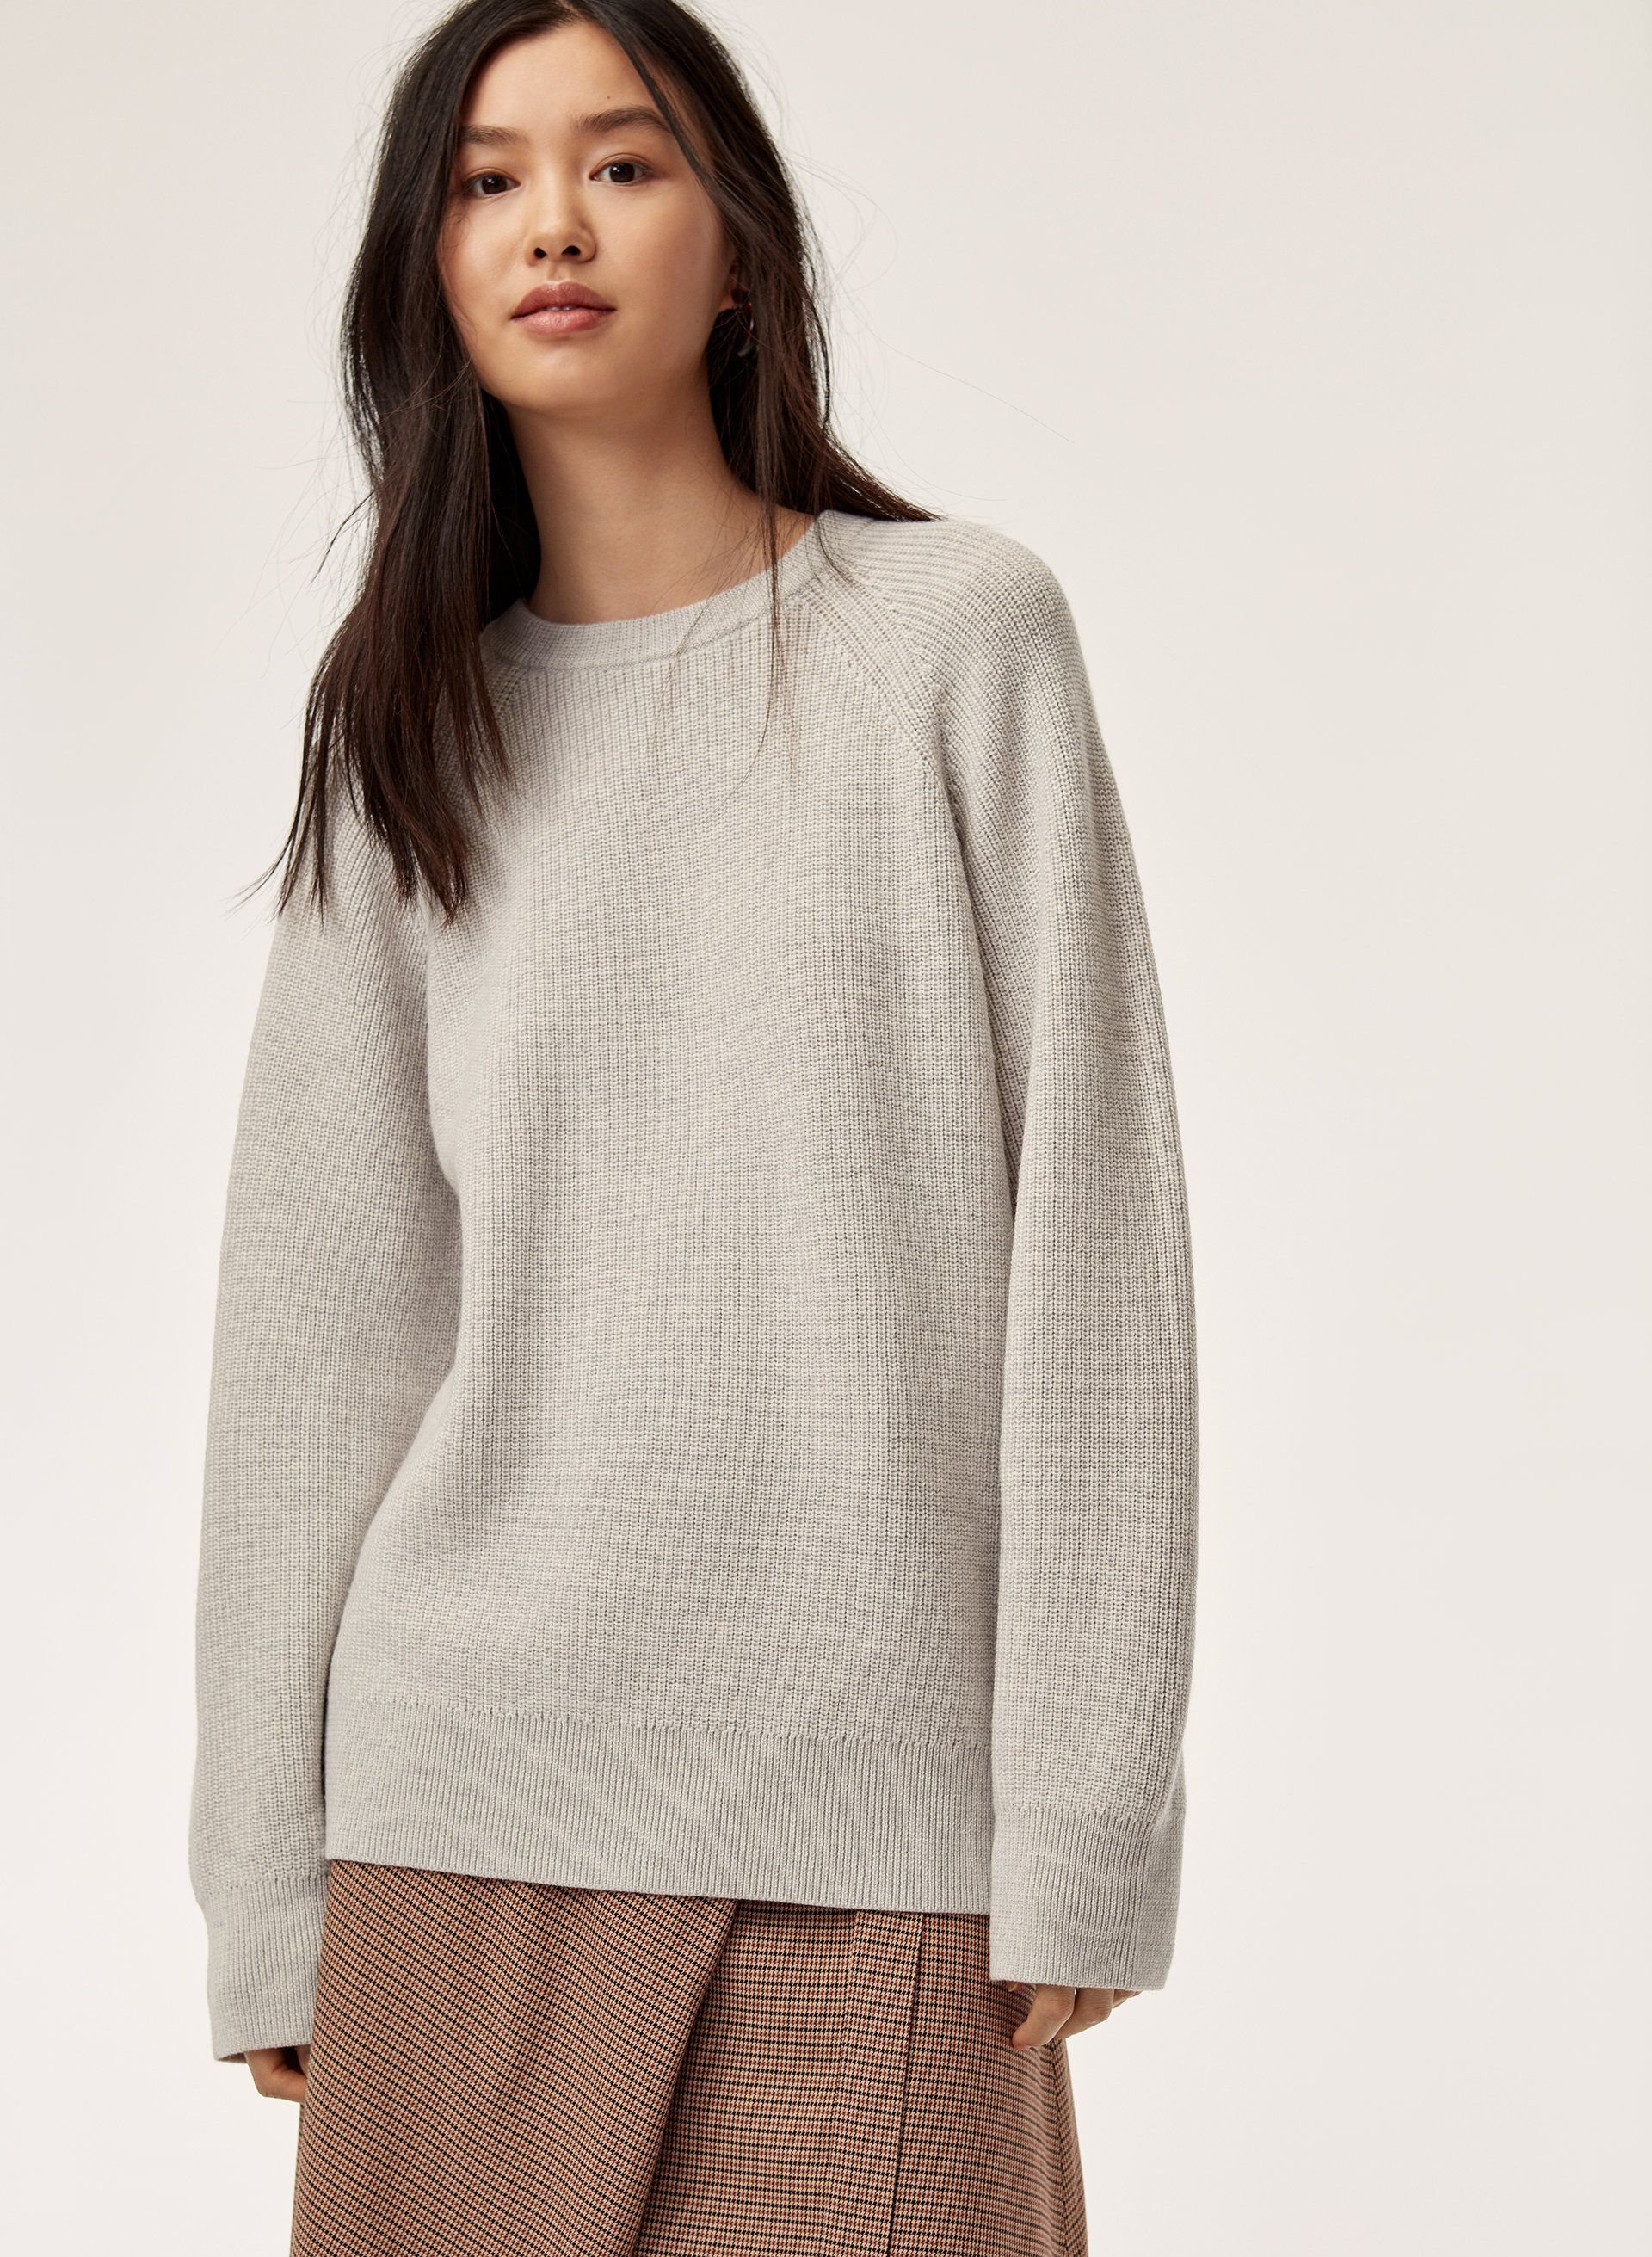 Find Shoppingfab hm rib knit sweater recommend to wear in winter in 2019